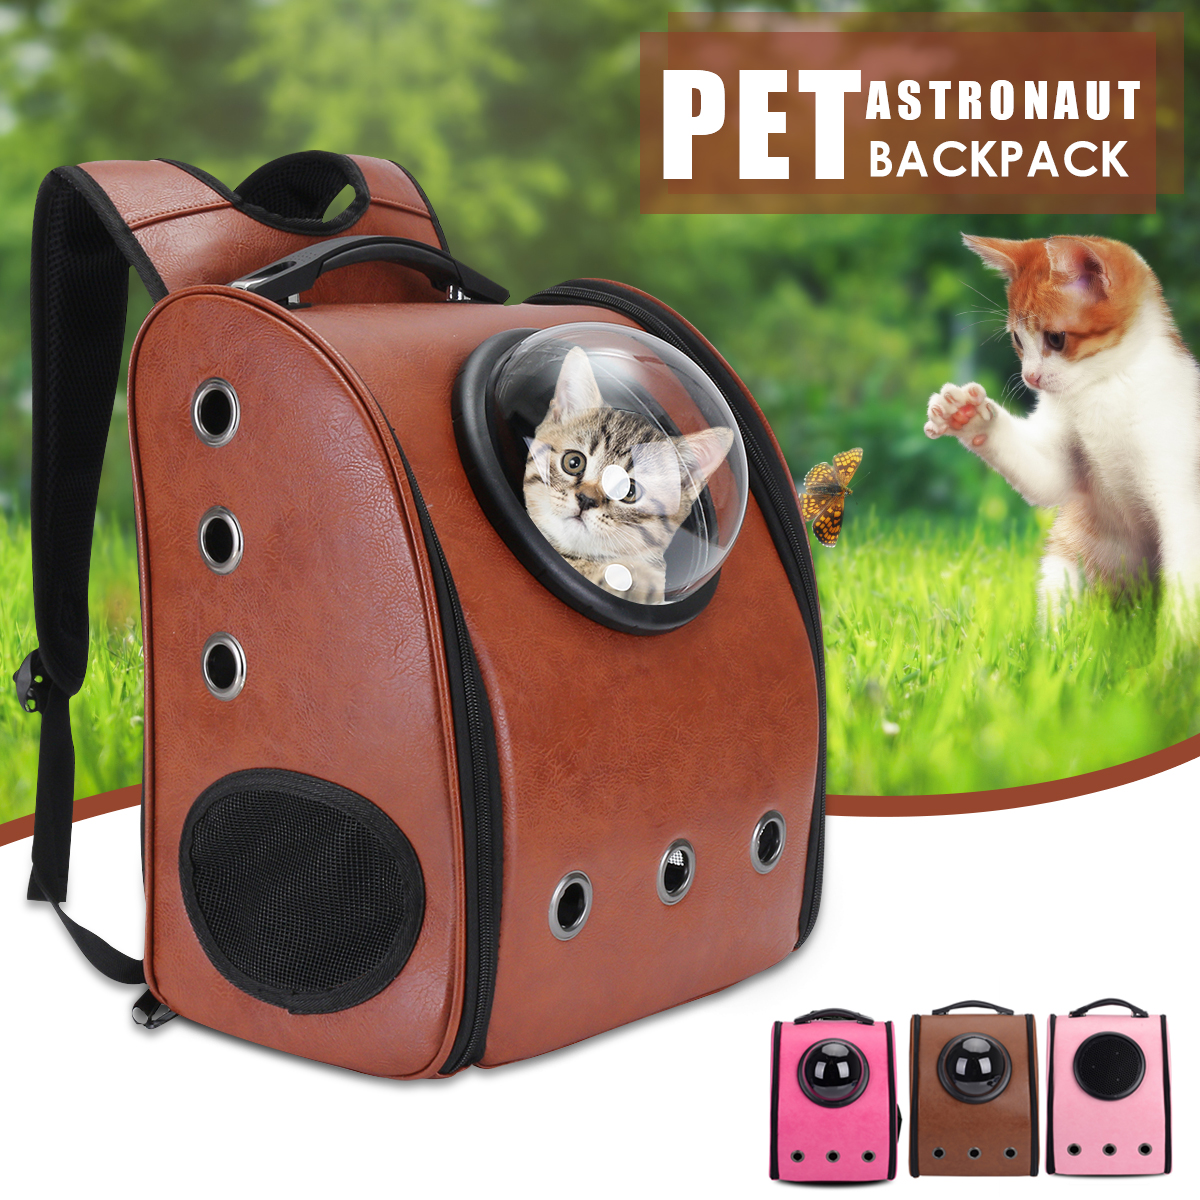 Astronaut Space Capsule Pet Backpack Small Dog Puppy Cat Outdoor Travel Carrier Breathable Shoulder Bag Winter House